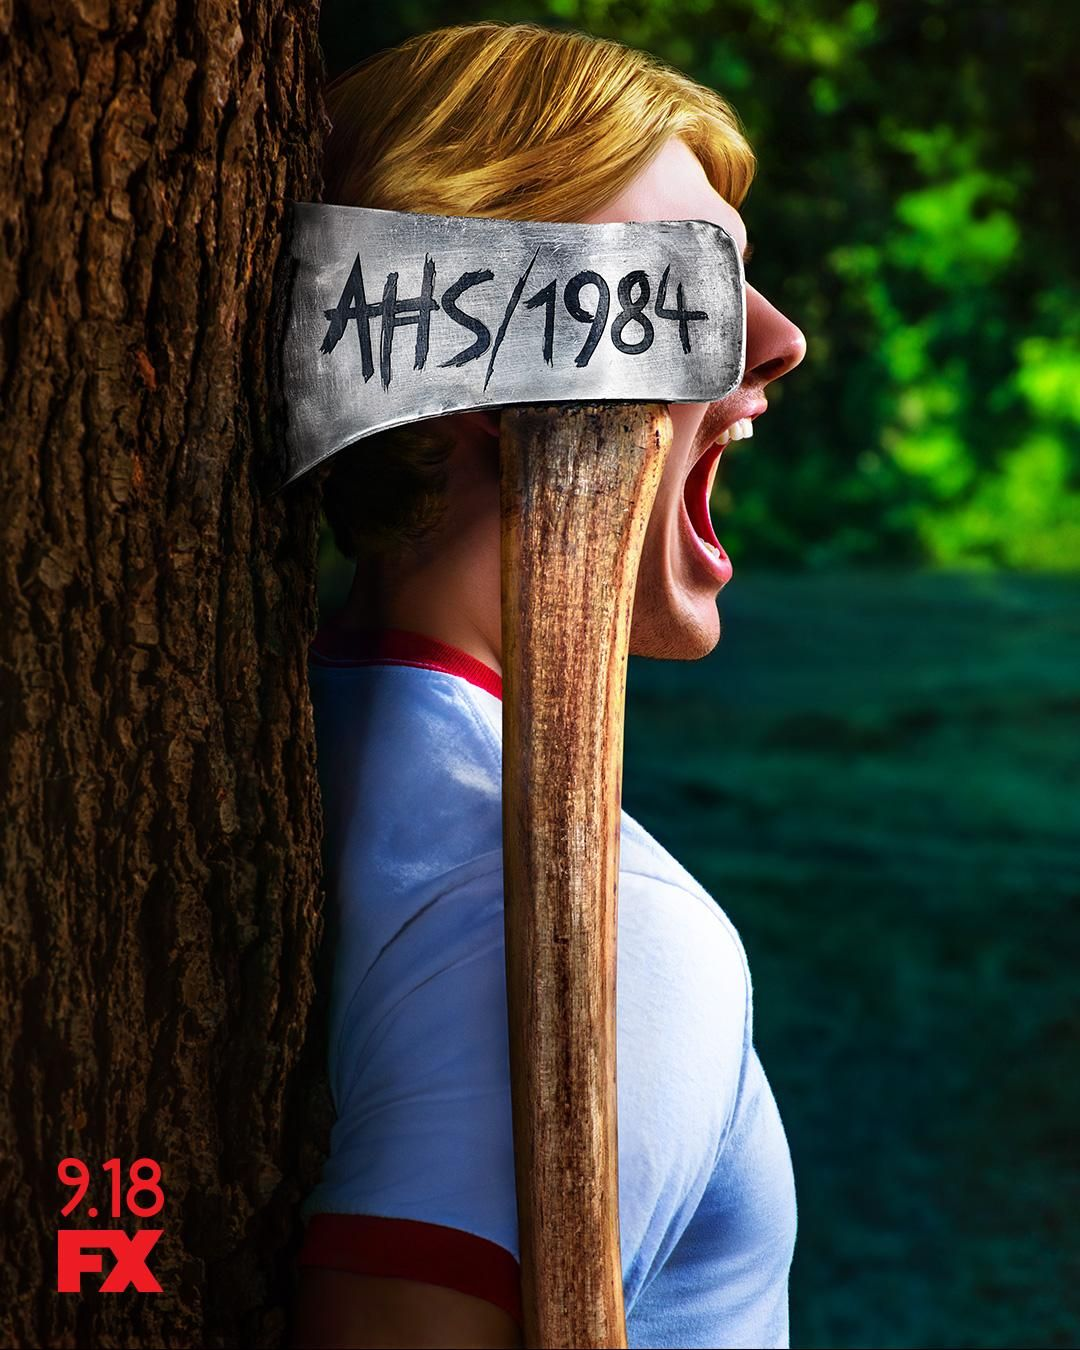 AHS 1984 theory: A big twist is coming, but what could it be?